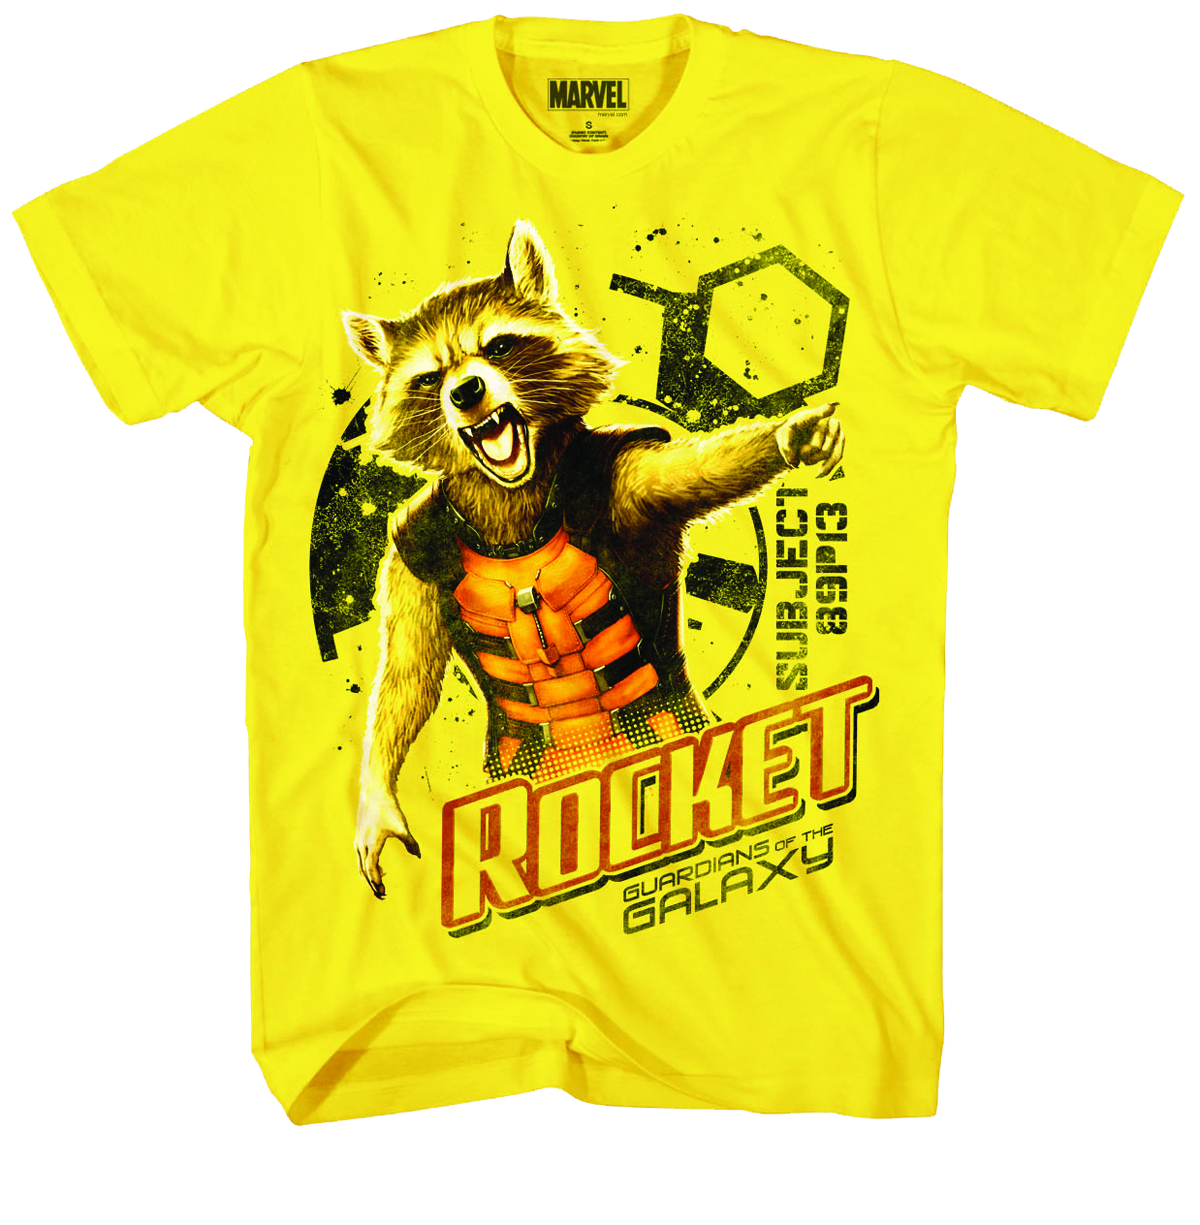 GOTG BRO BANDIT PX YELLOW T/S MED